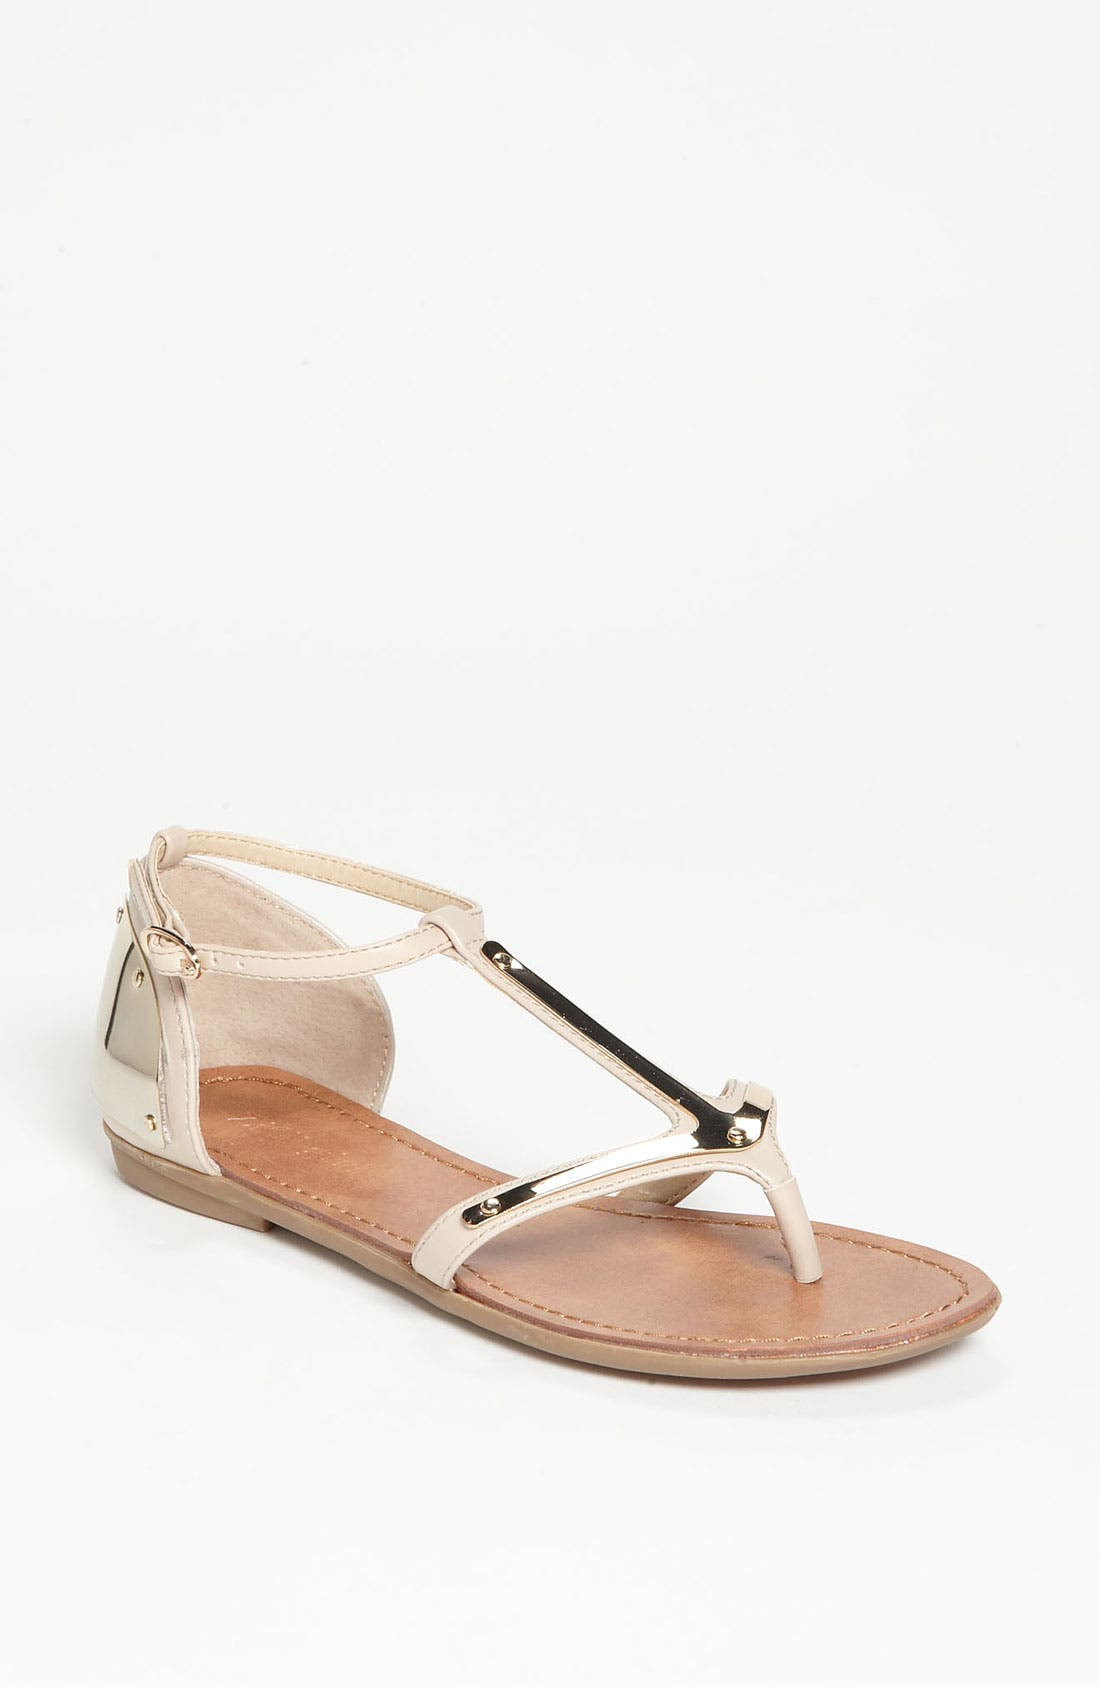 Main Image - ZiGi girl 'Arrow' Sandal